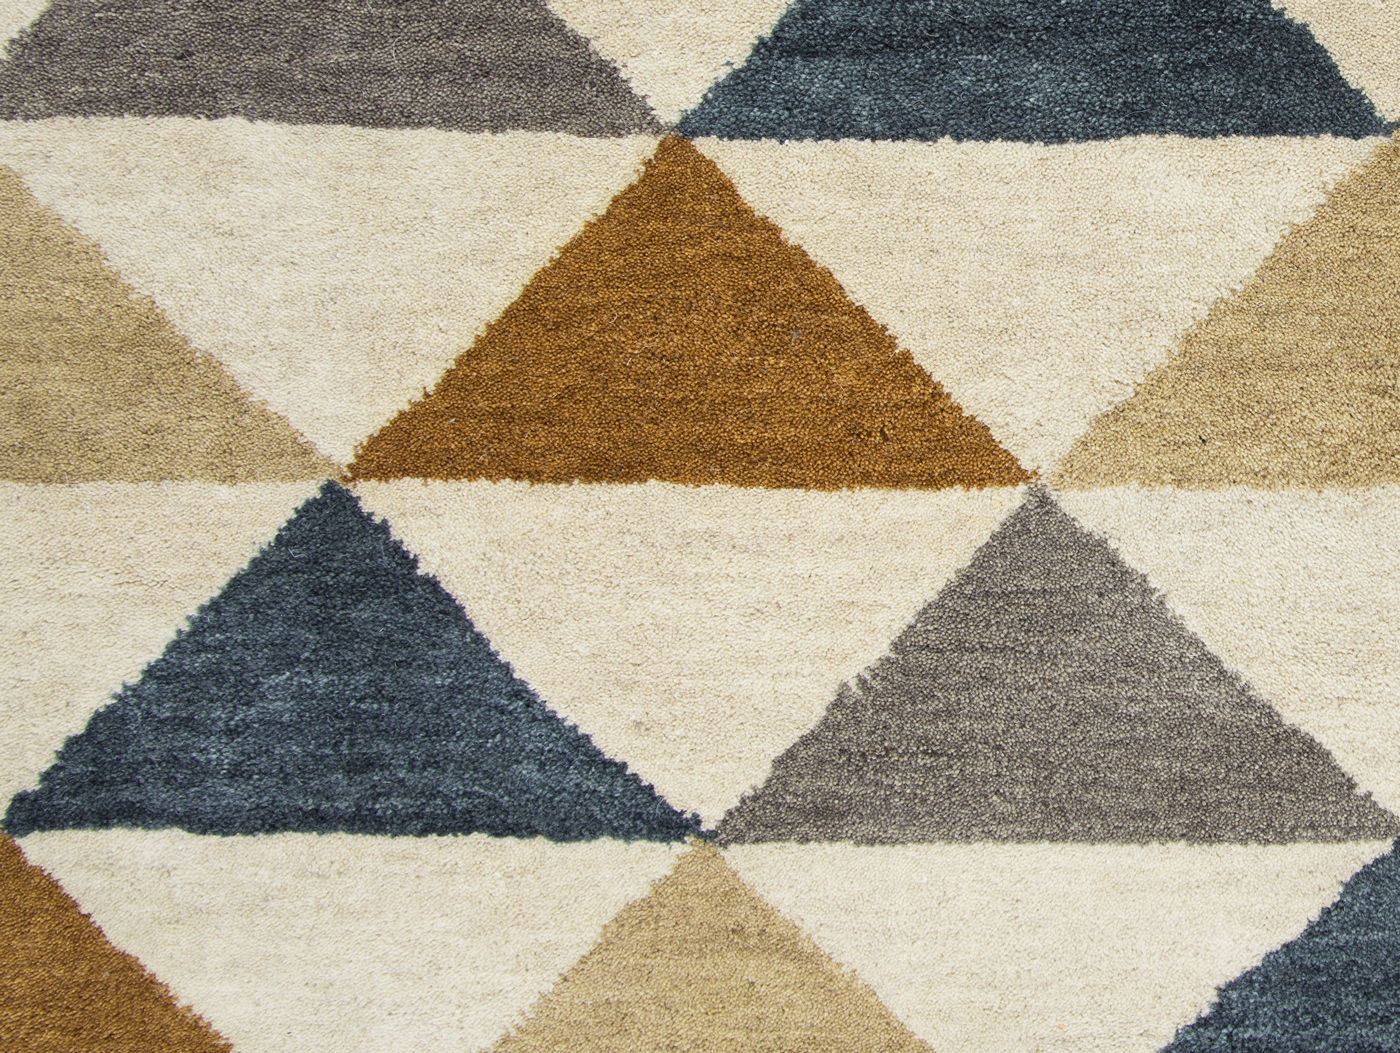 Grey Tan And Brown Area Rug: Marianna Fields Triangle Pattern Wool Area Rug In Blue